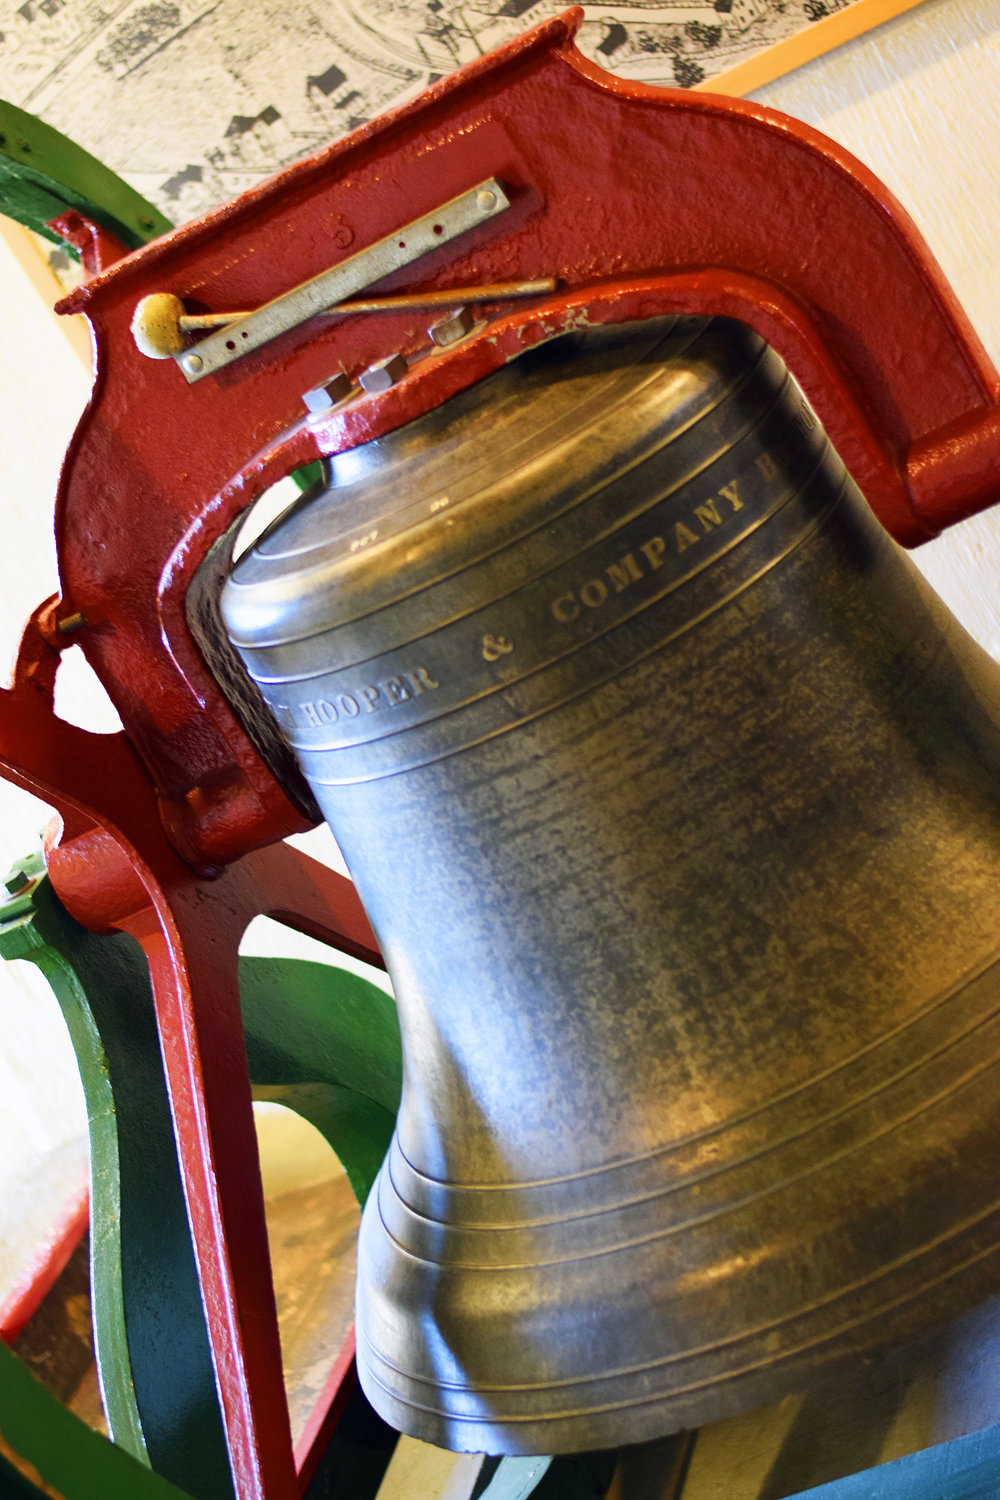 The Boston Manufacturing Company Bell